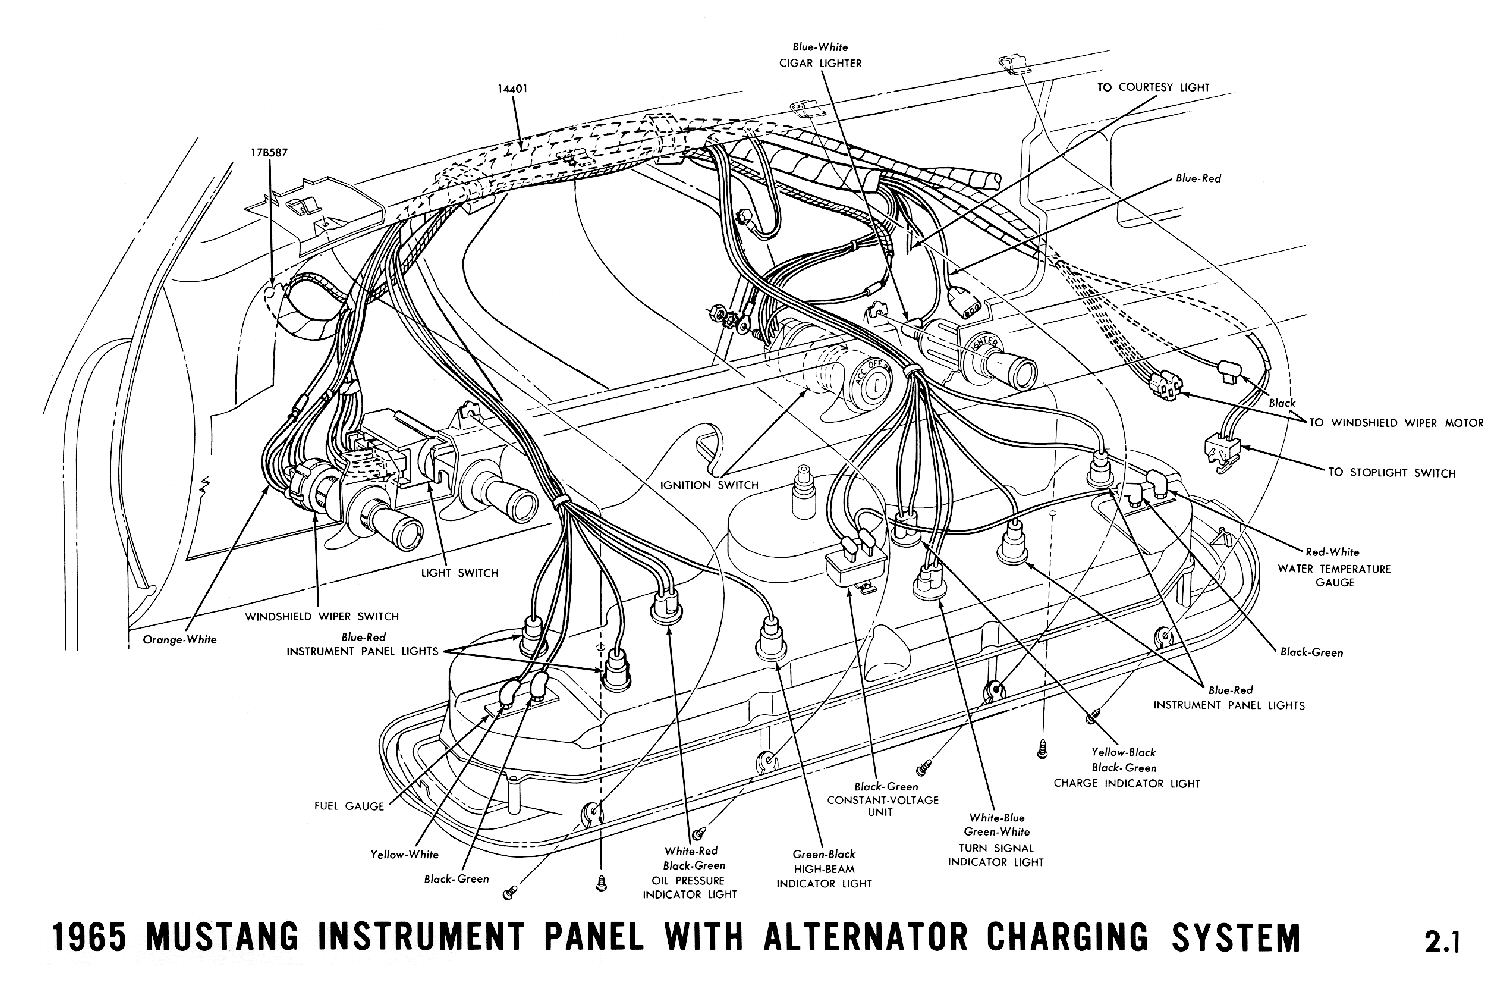 1965a 1965 mustang wiring diagrams average joe restoration highway 22 wiring diagram at creativeand.co